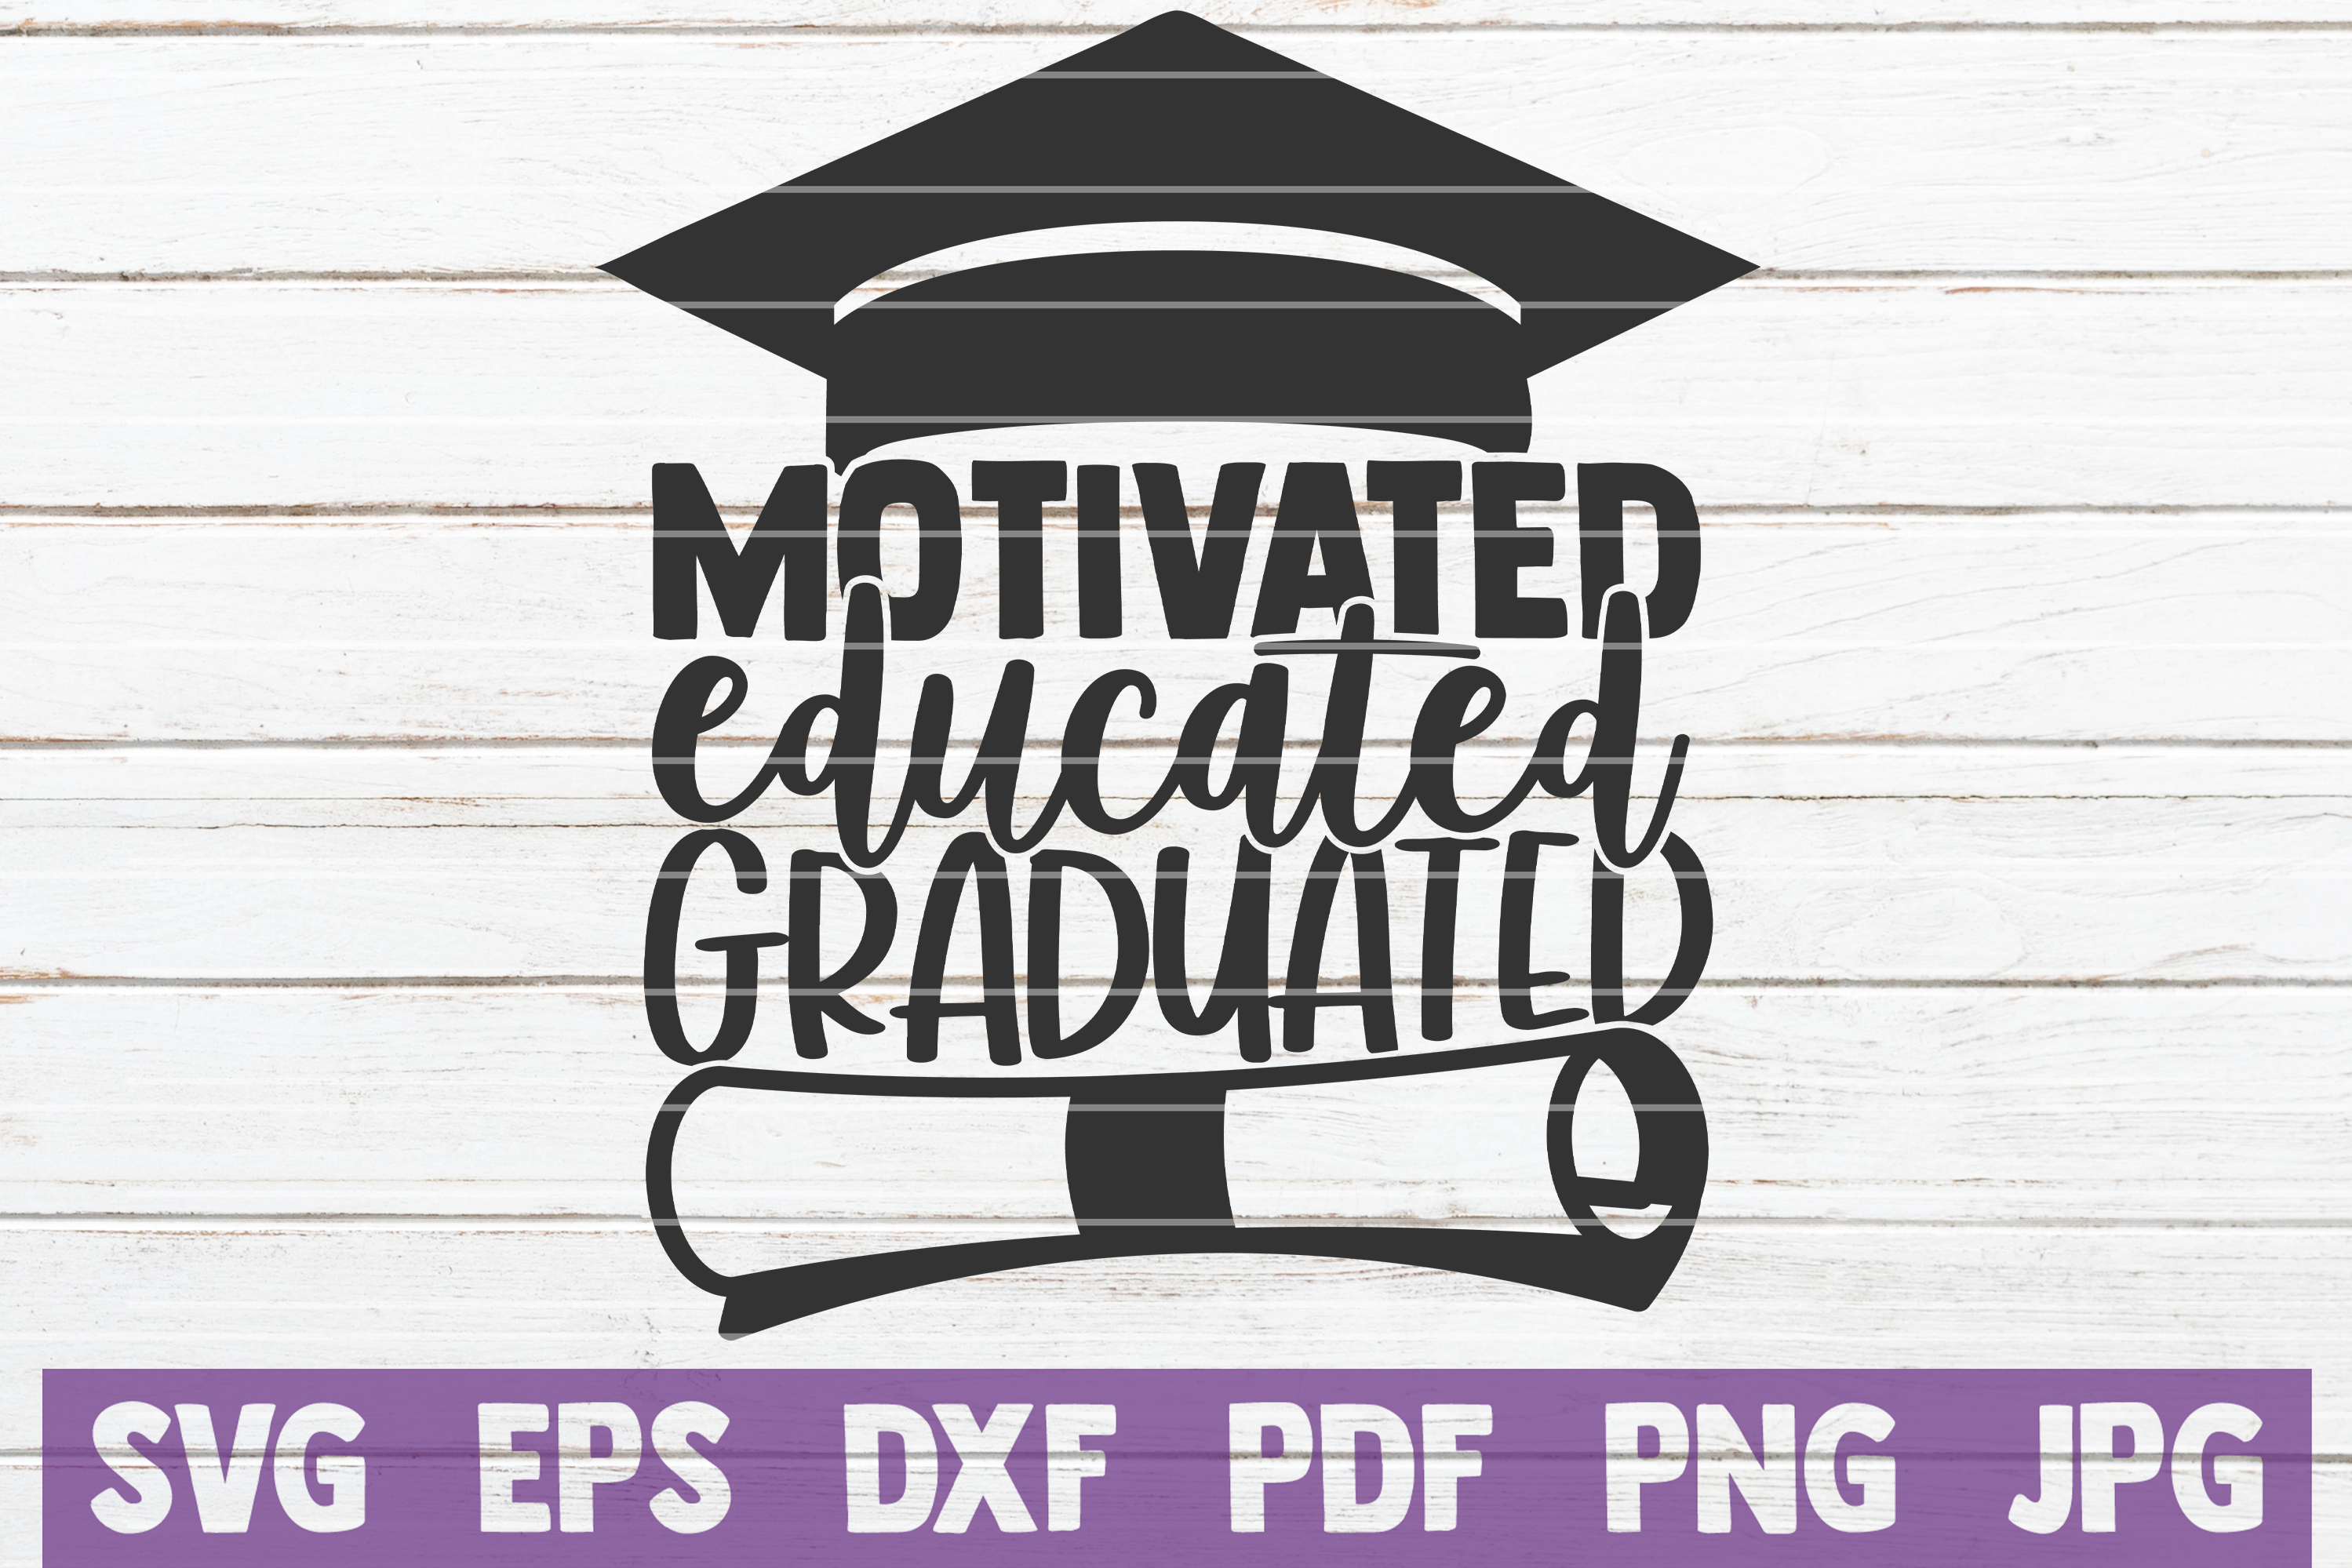 Download Free Motivated Educated Graduated Graphic By Mintymarshmallows for Cricut Explore, Silhouette and other cutting machines.